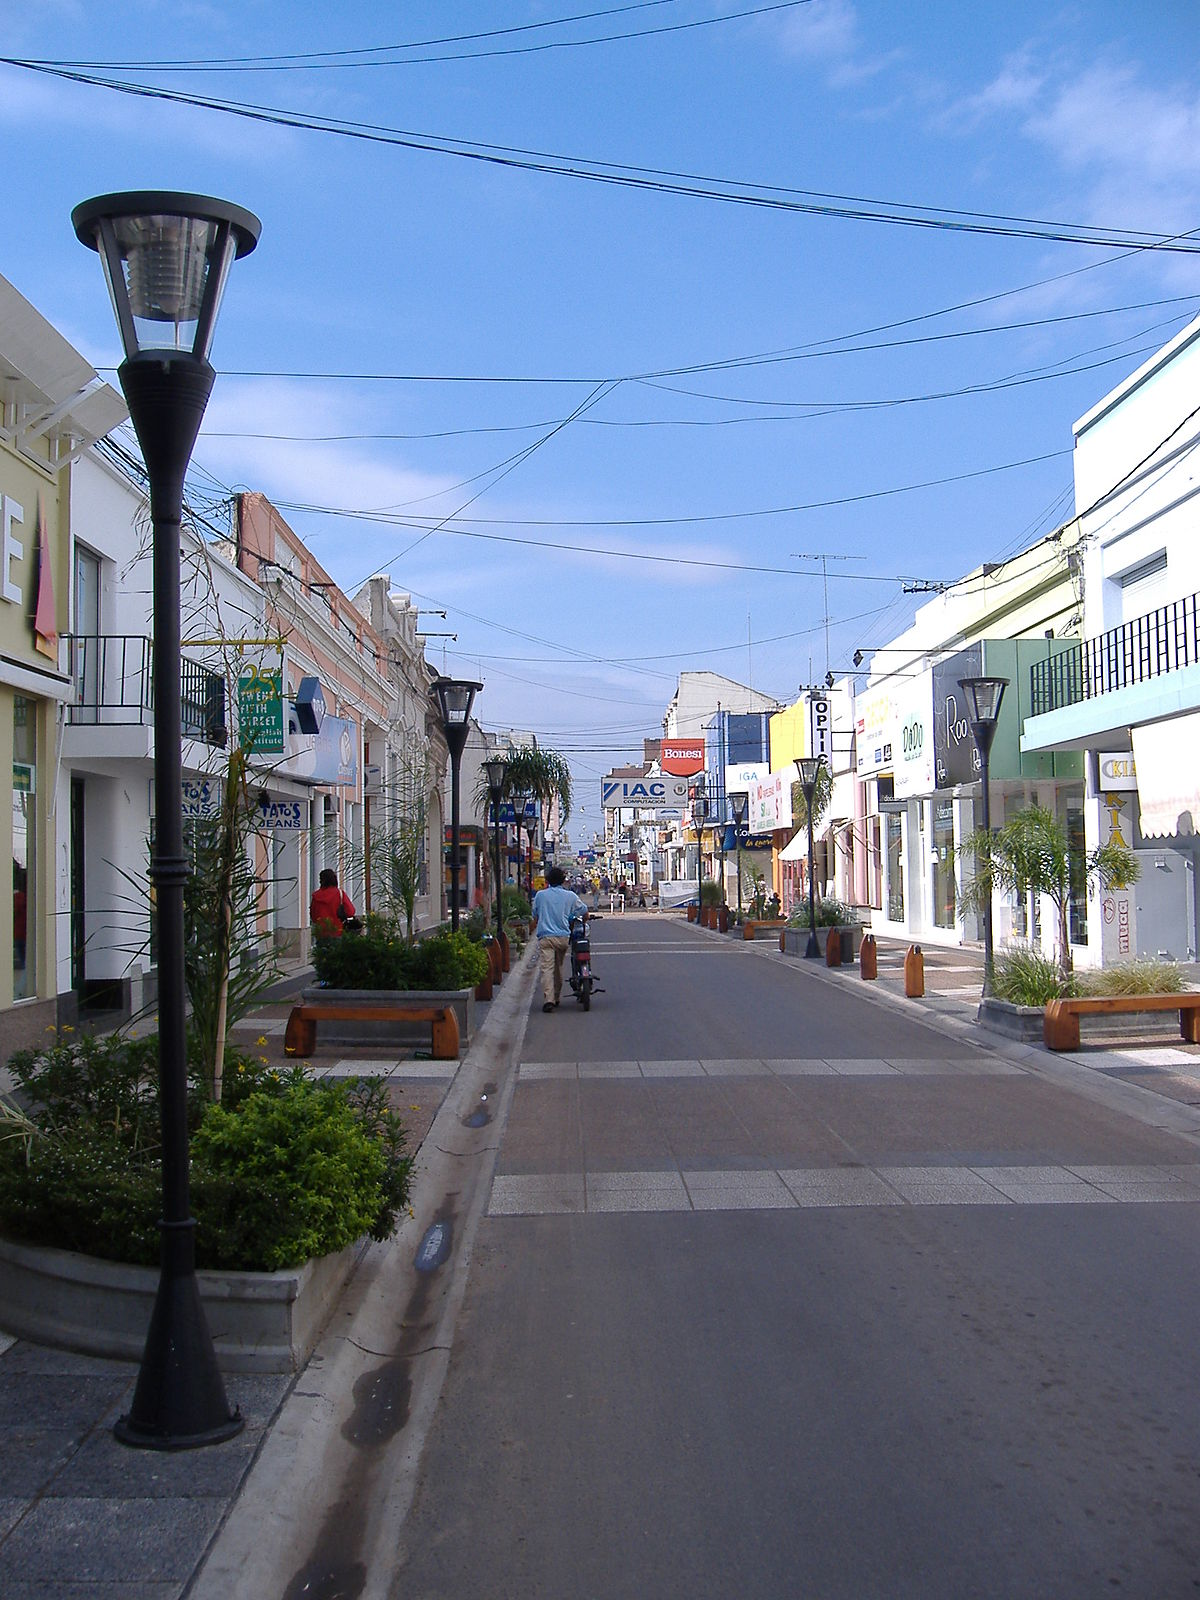 Gualeguaych Entre Ros  Wikipedia